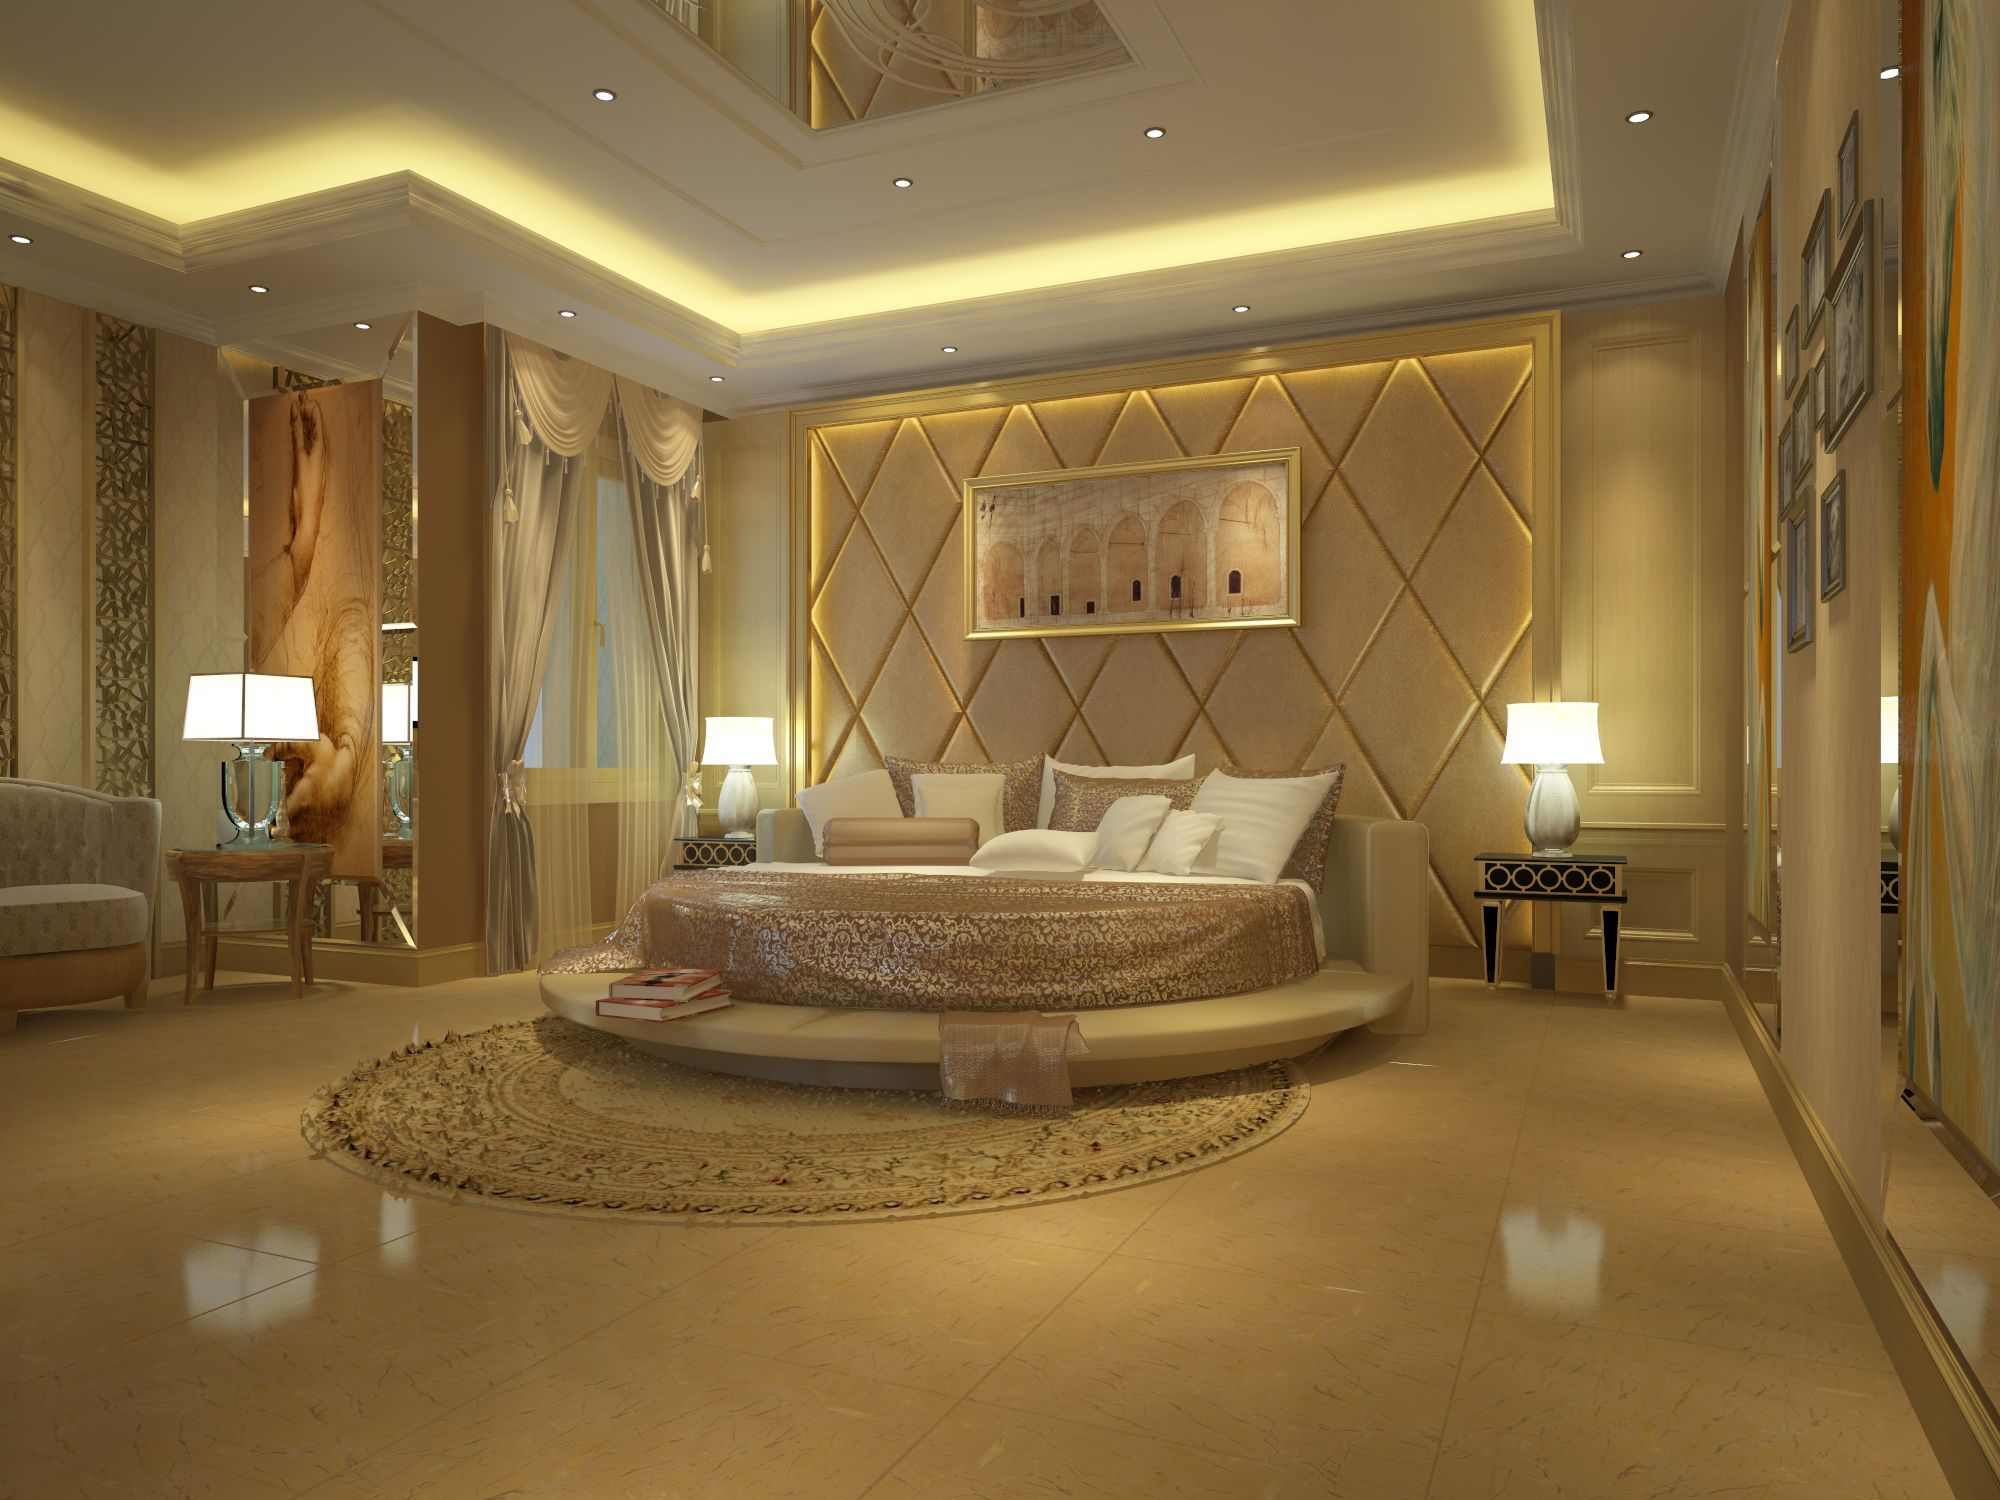 Maybe You Are Also Interested In Our 45 Beautiful And Elegant Bedroom Decorating